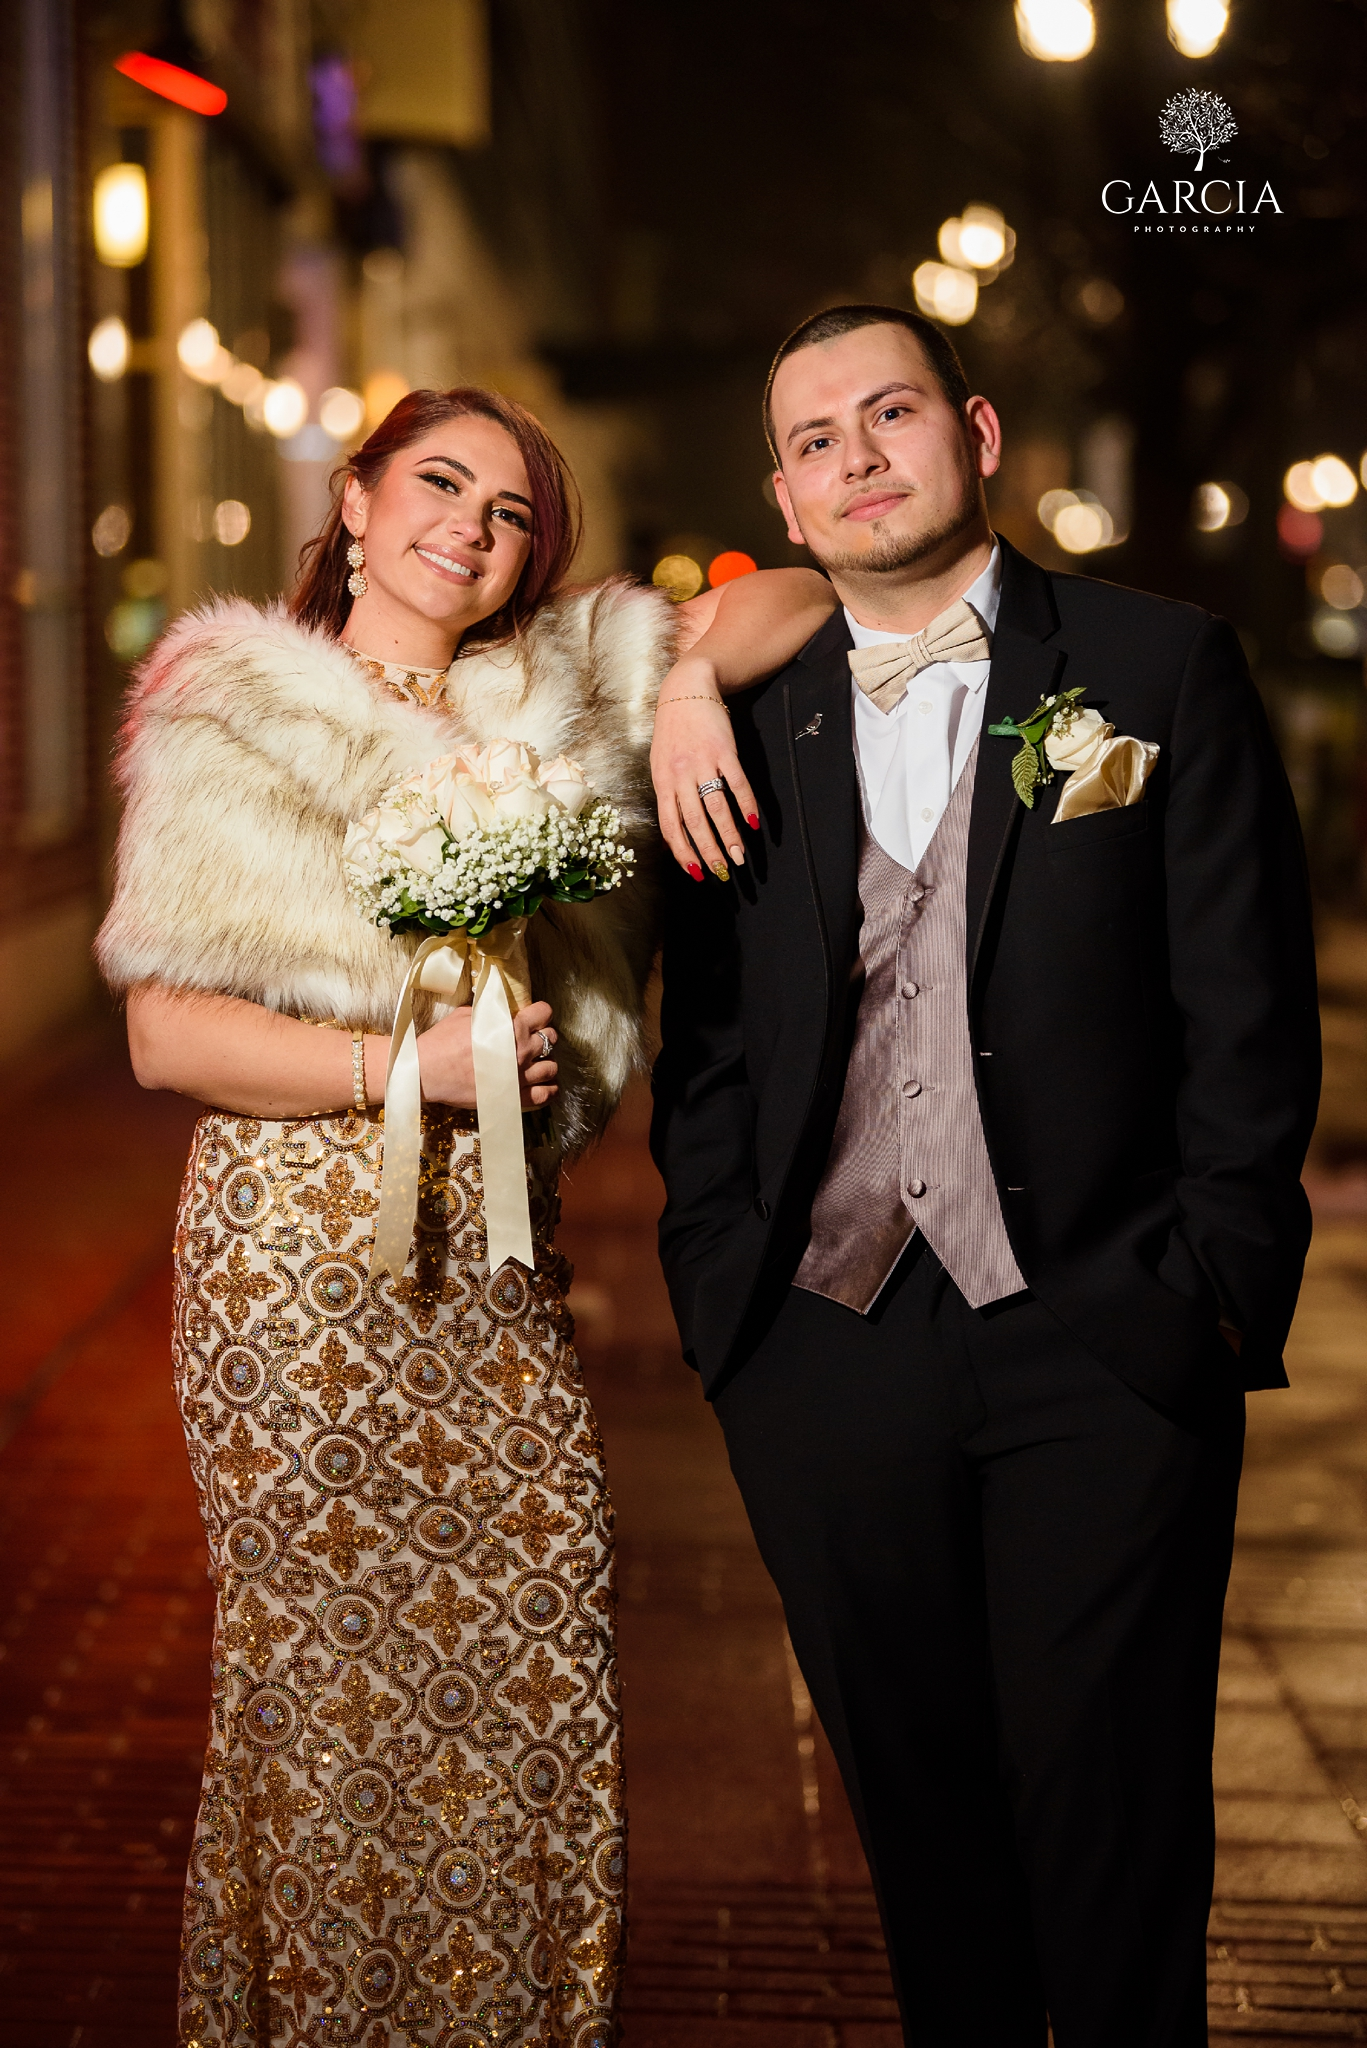 Emily-Junior-Wedding-Garcia-Photography-4745.jpg